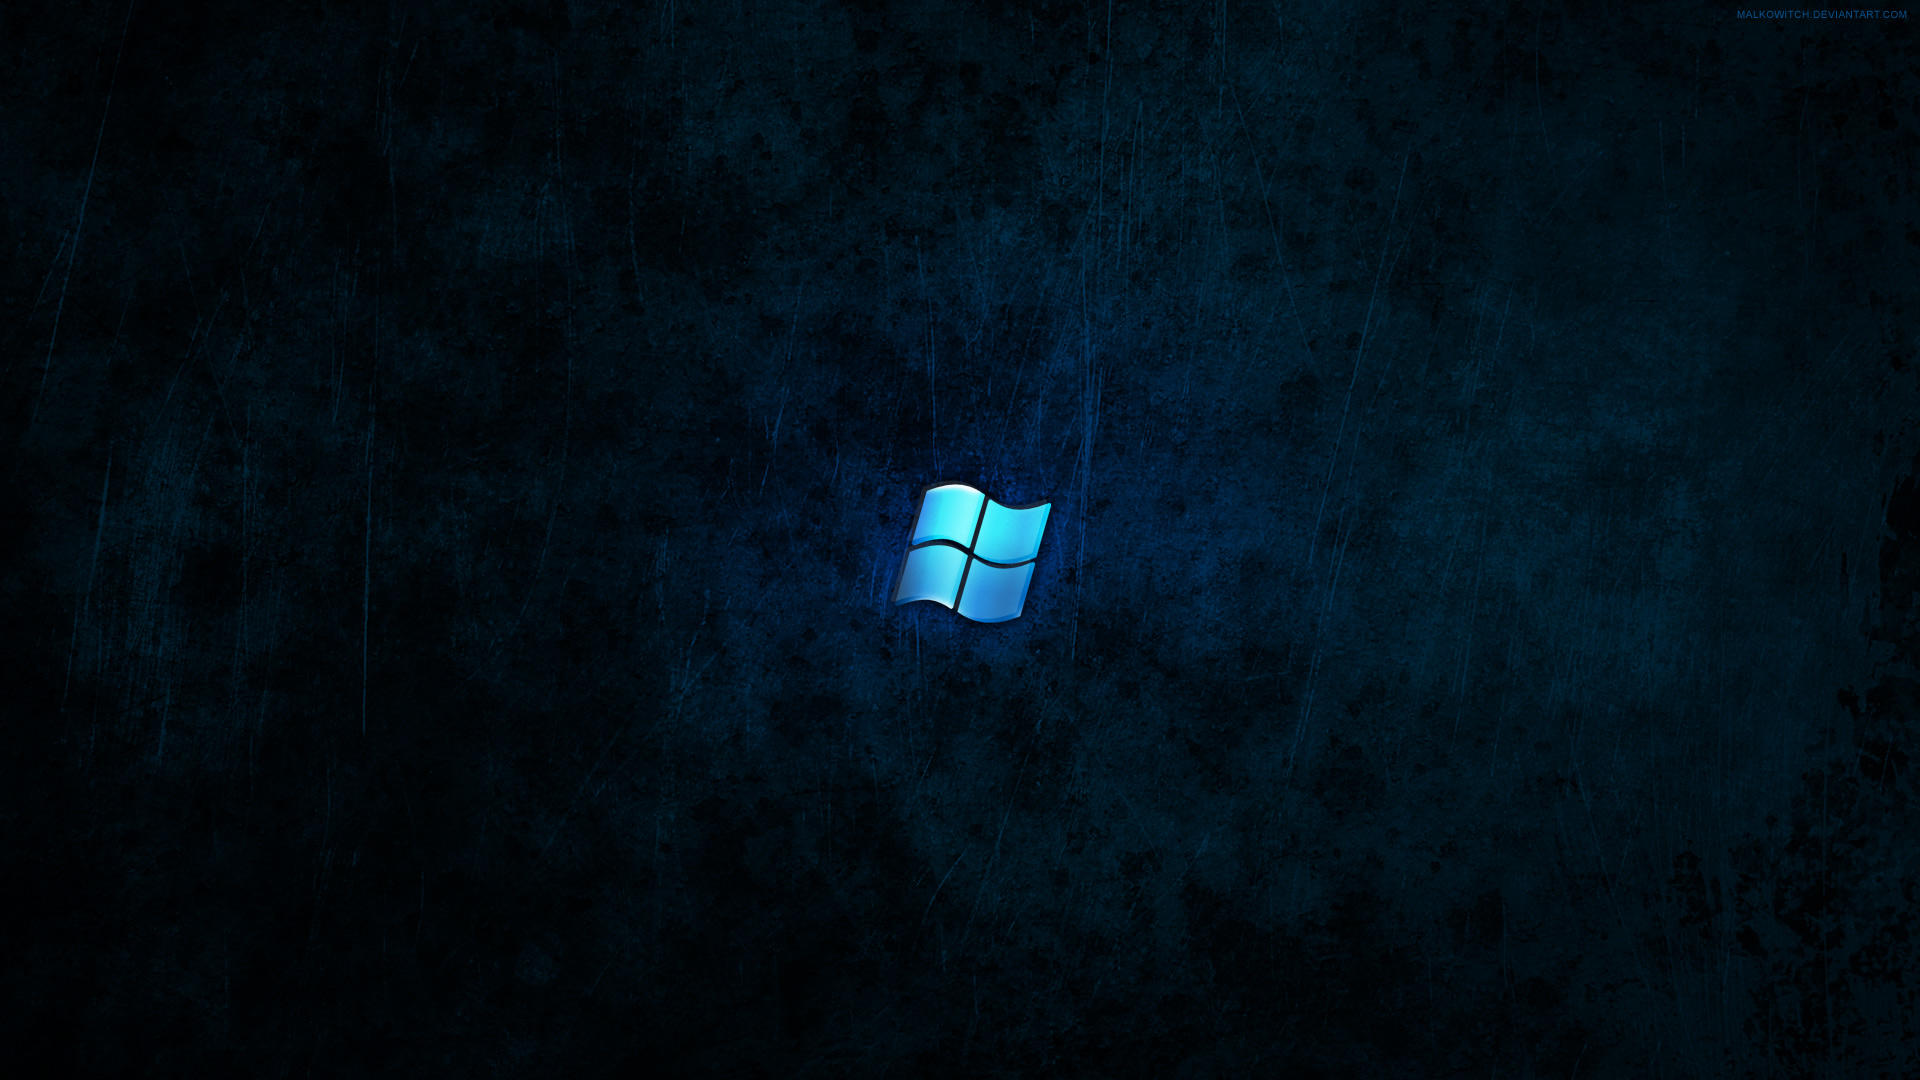 Windows Dark Blue Wallpaper